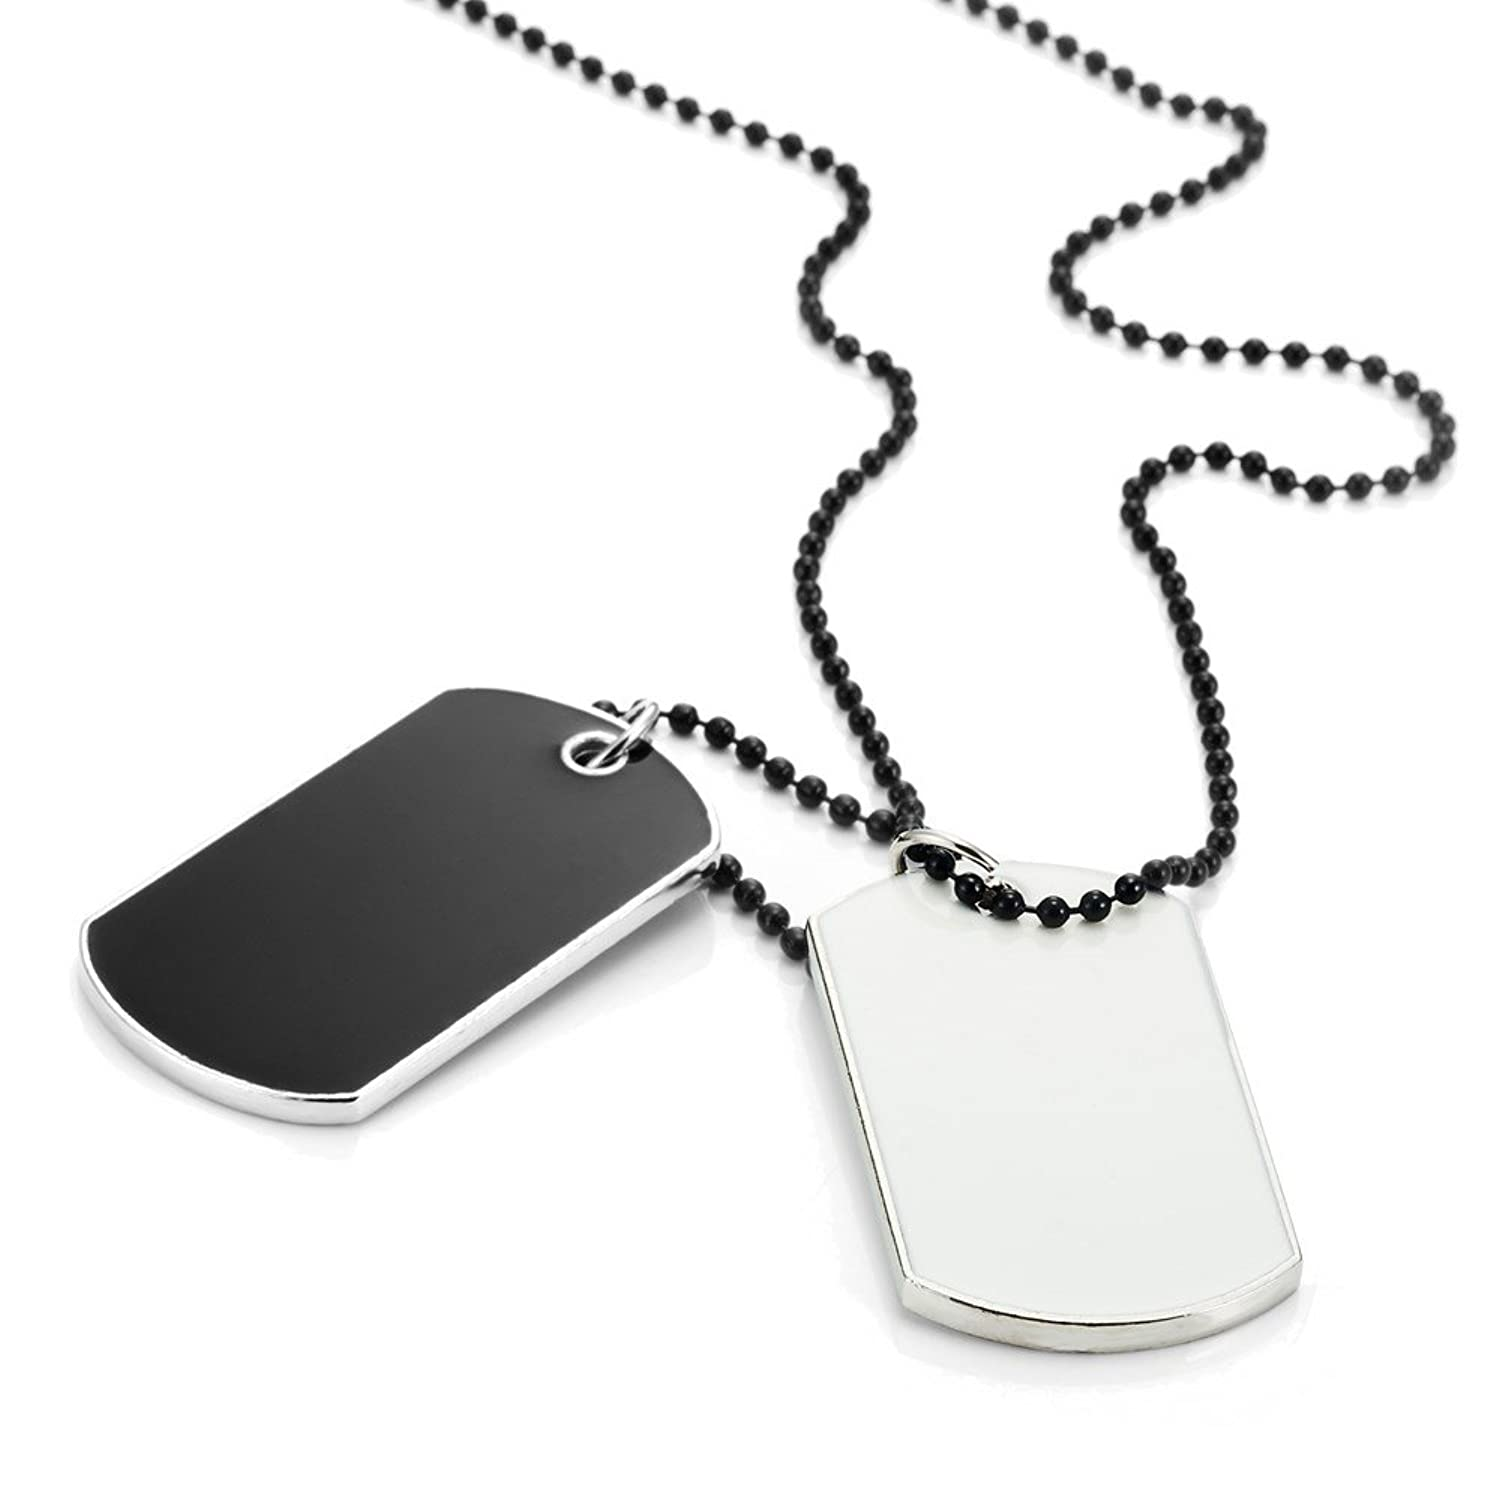 Engraved dog tag jewelry interesting custom pet necklace photo dog free army style pcs dog tag pendant mens necklace chain with branded gift box amazoncom with engraved dog tag jewelry aloadofball Images